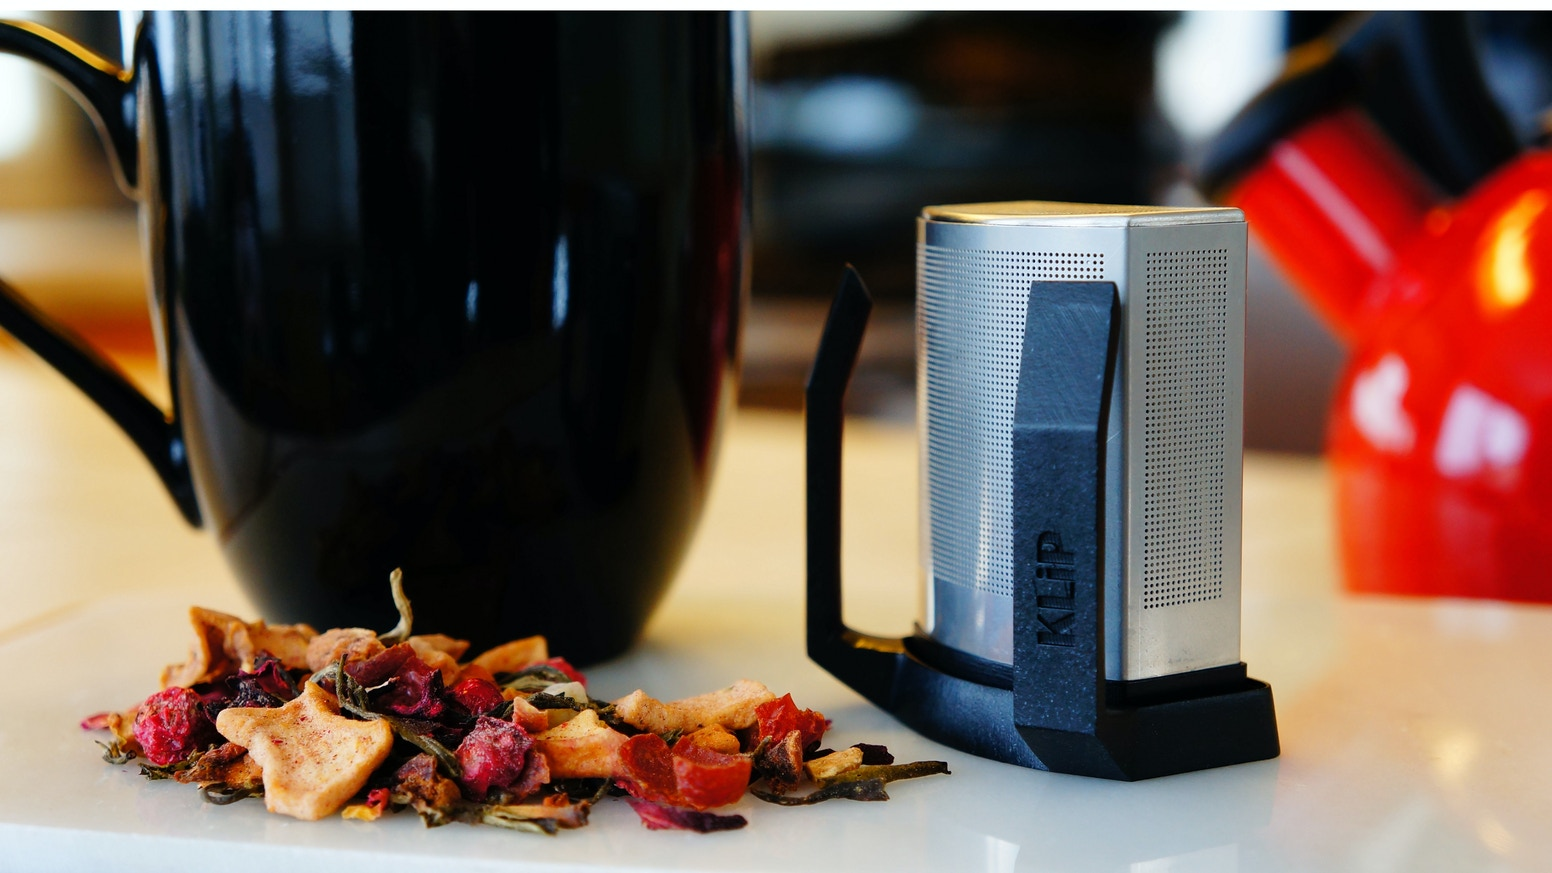 The easiest way to brew your favorite tea blends. Built-in saucer lets you steep and sip to taste. Delicious tea every time!!